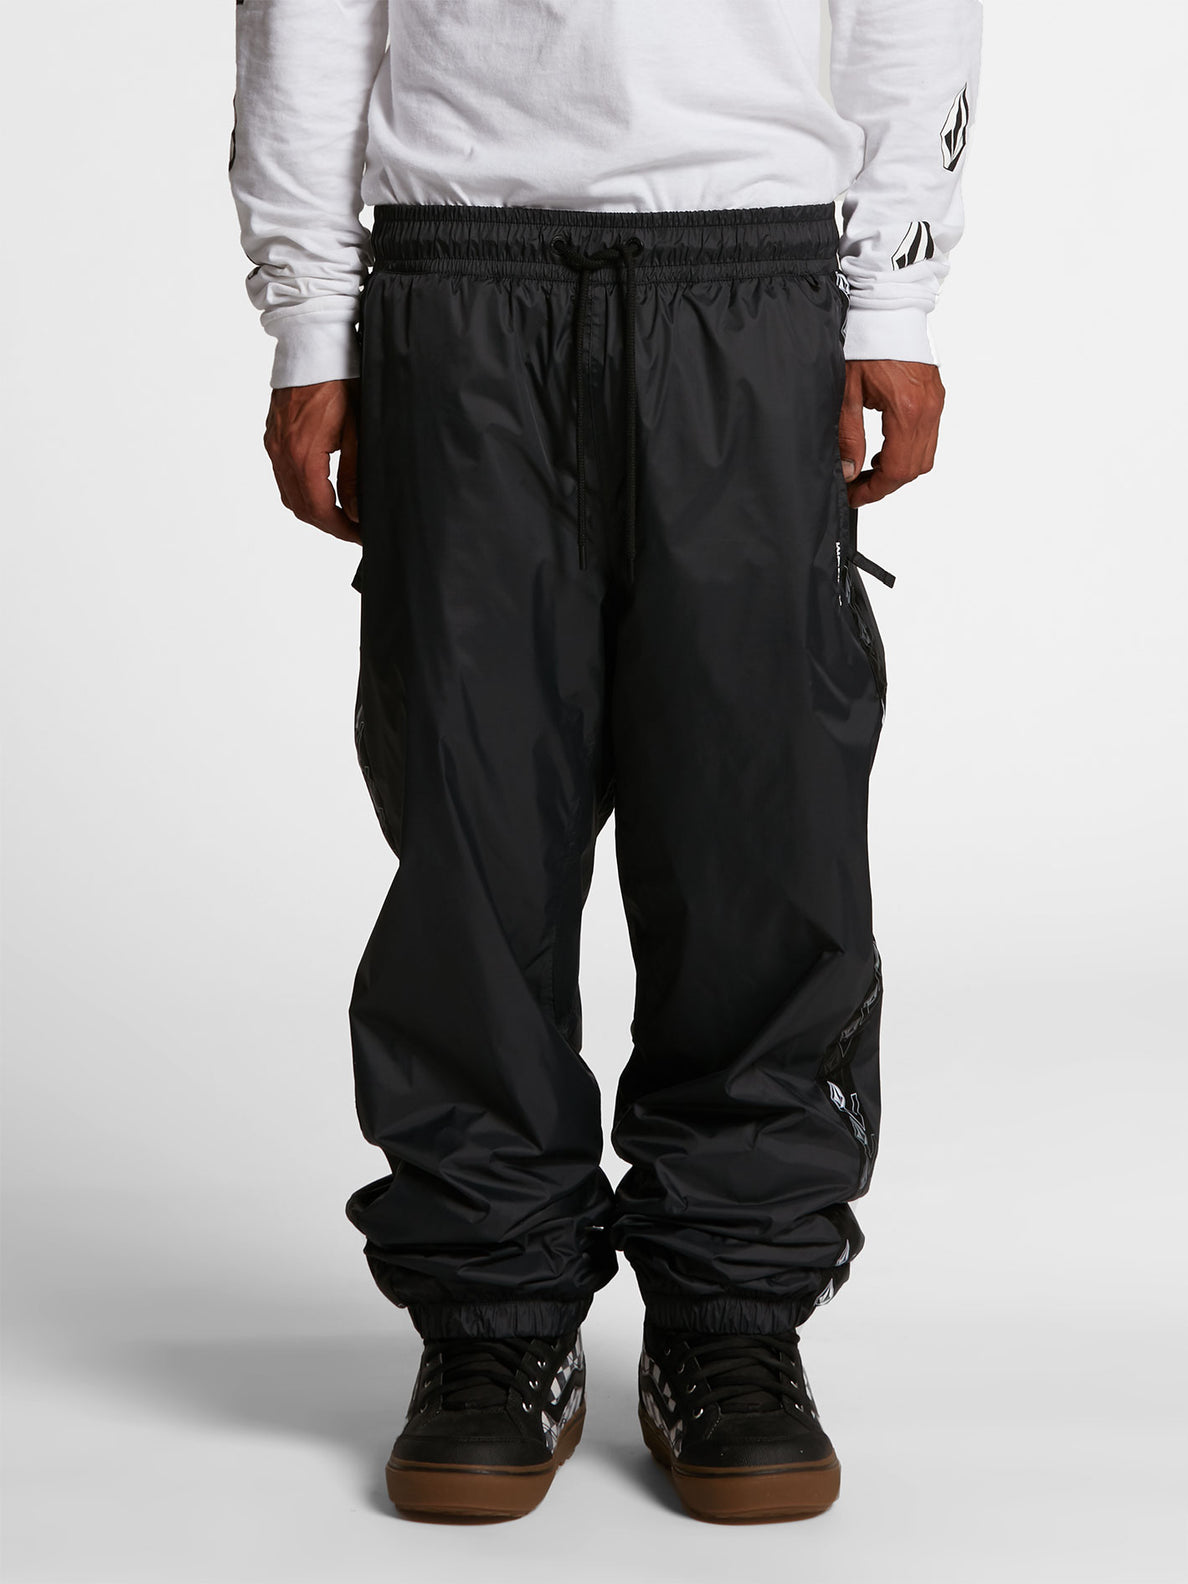 SLASHLAPPER PANT - BLACK (G1352110_BLK) [03]